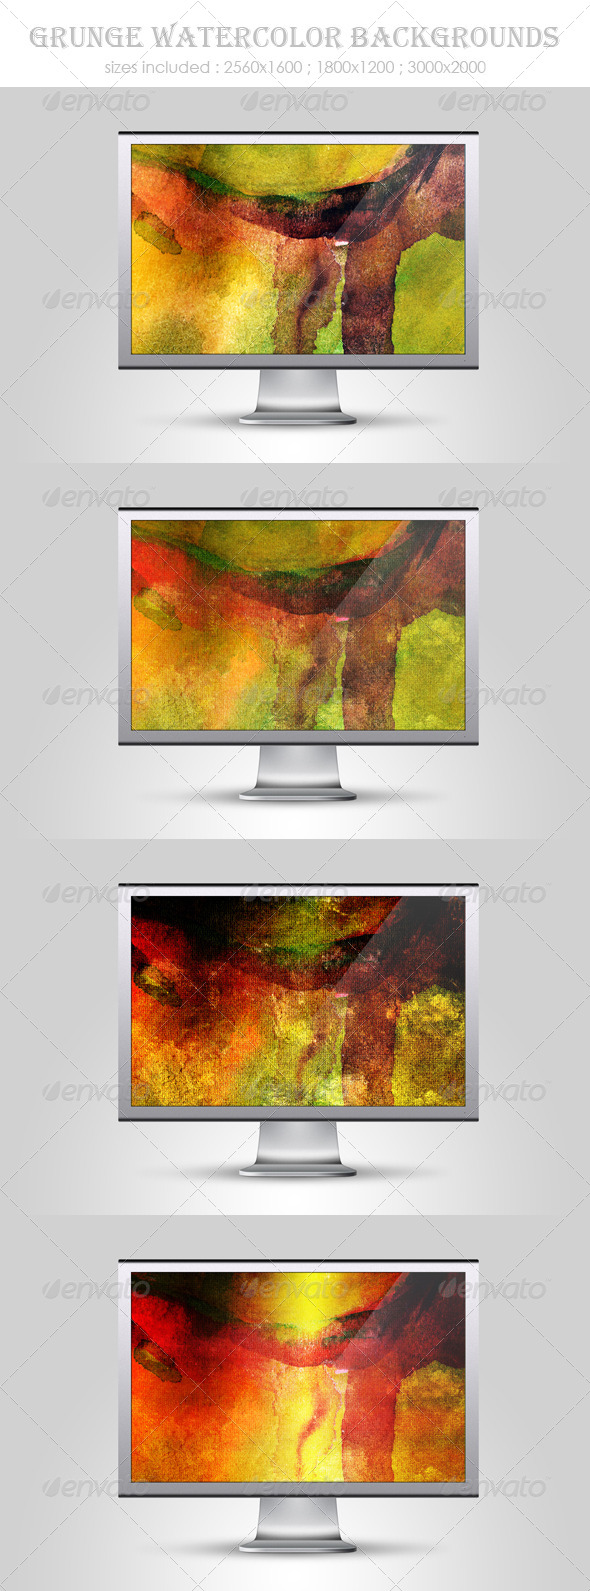 GraphicRiver Grunge Watercolor Backgrounds 4733355